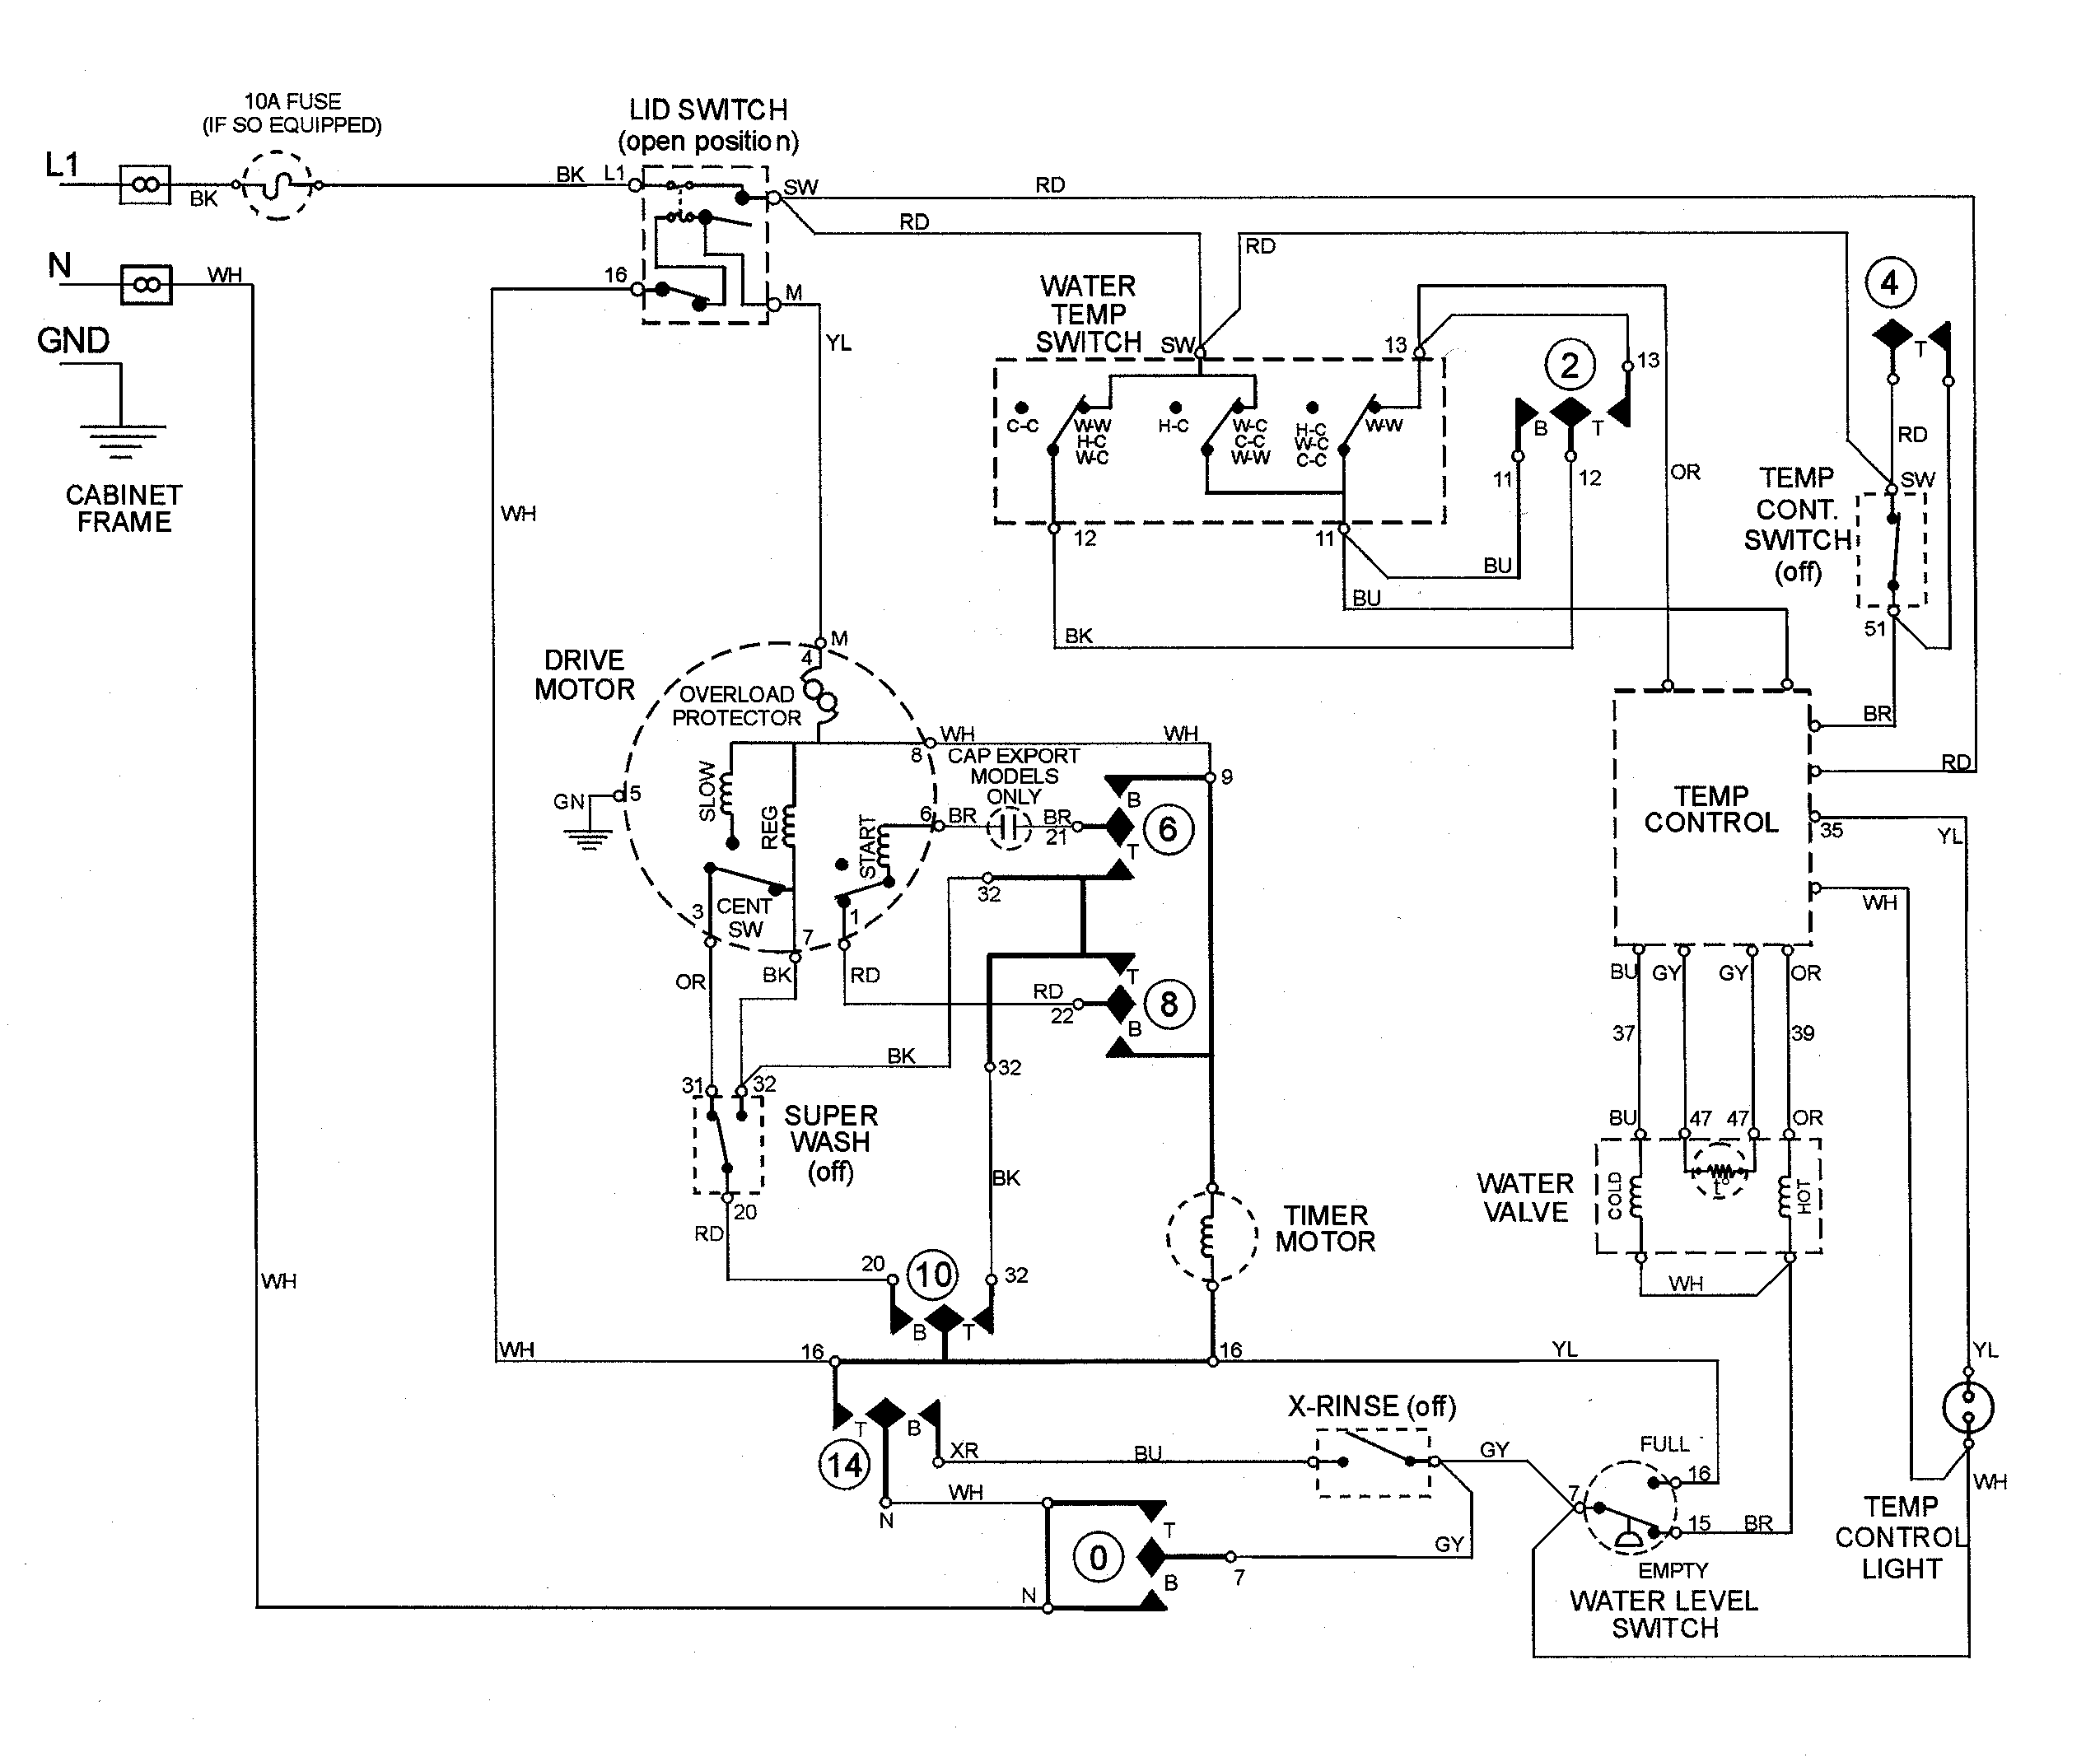 small resolution of machines wiring diagram wires wiring diagram split 120v washer wire diagram wiring diagram host machines wiring